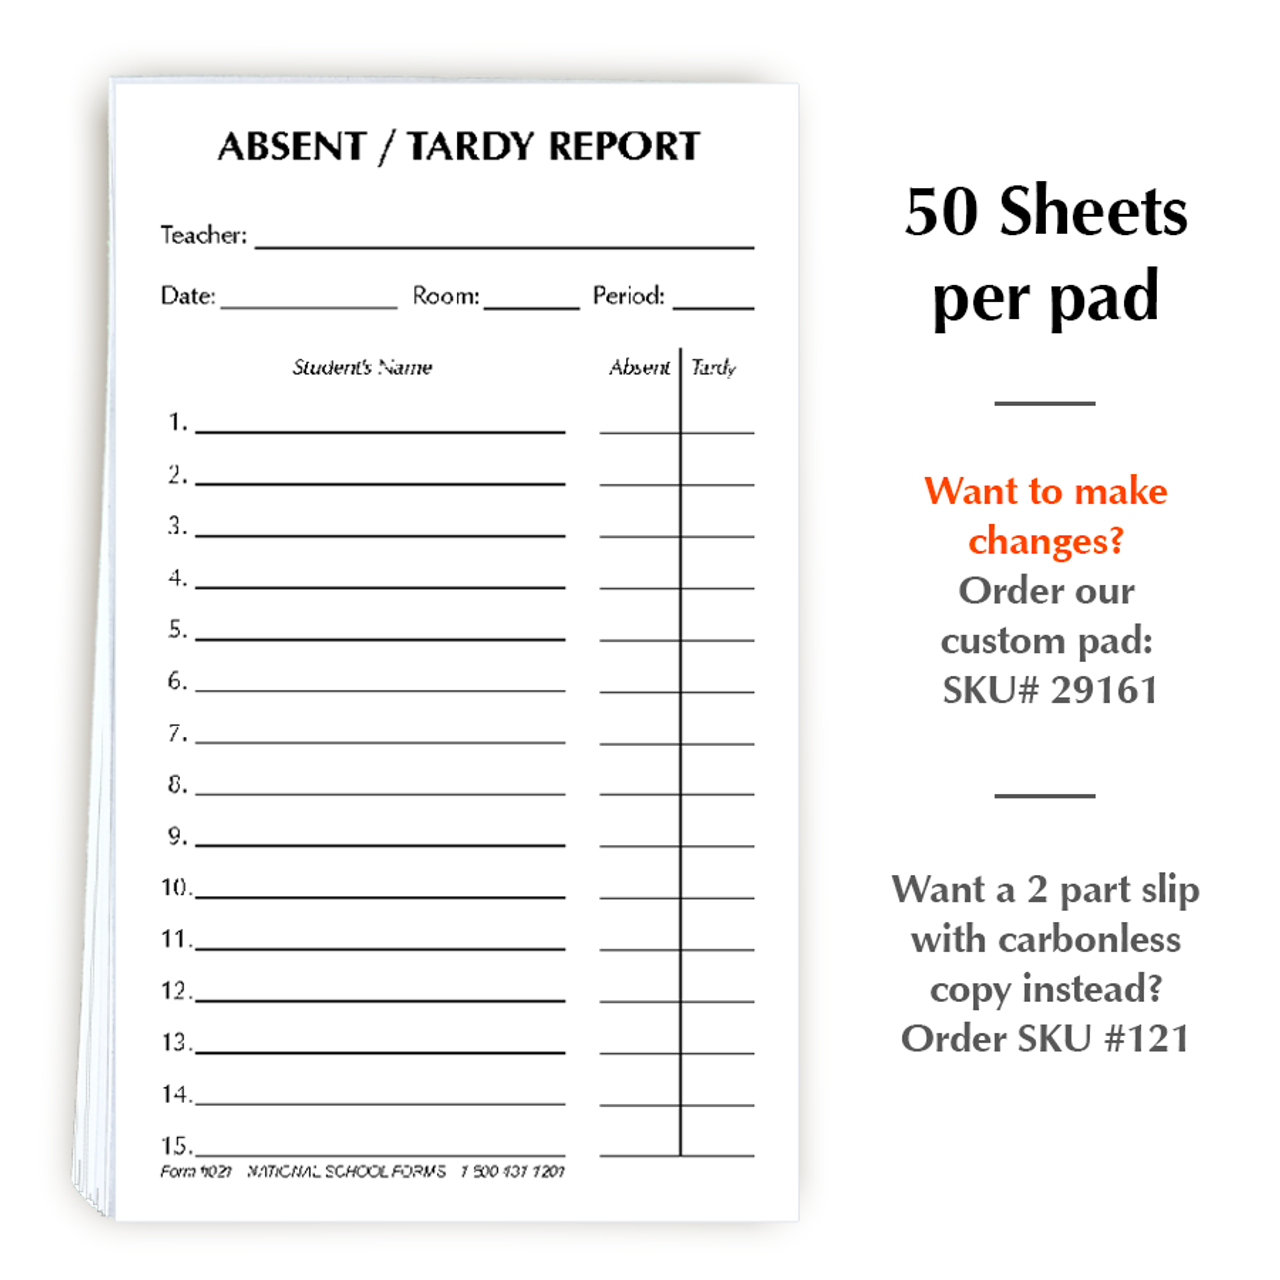 Absent-Tardy Report Pad - White - 50 Sheets per pad